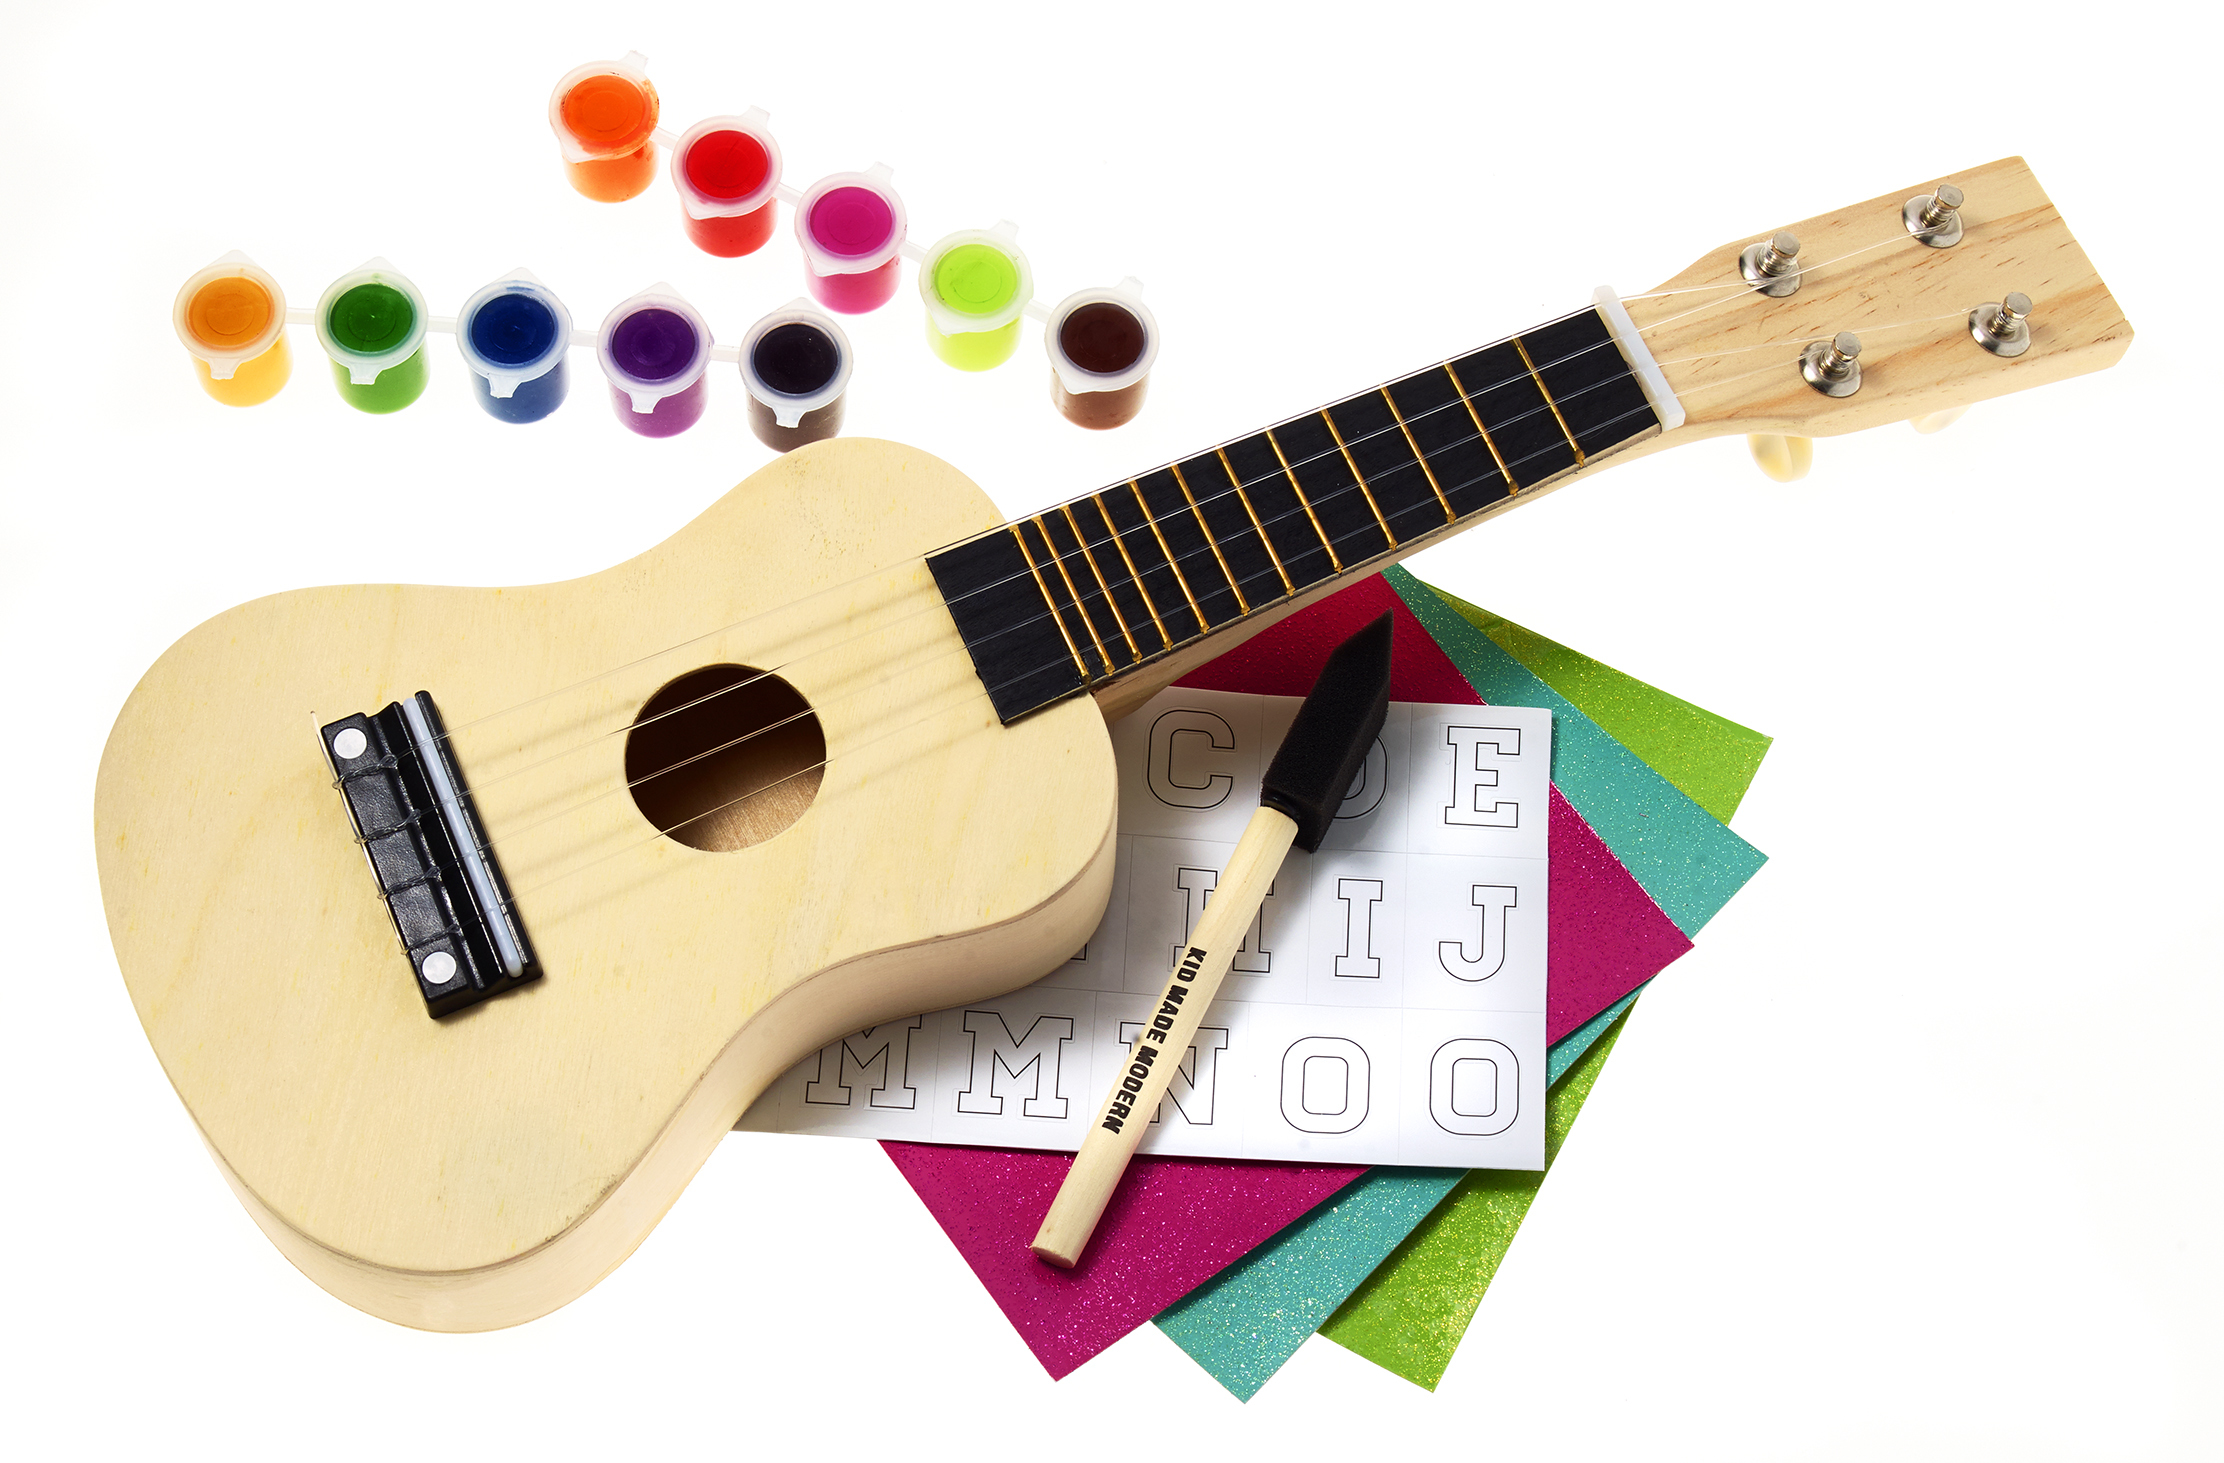 Find the perfect gift for everyone on your list this holiday season at Macy's stores and on macys.com; Kid Made Modern Ukulele Stencil Kit, $29.99. (Photo: Business Wire)